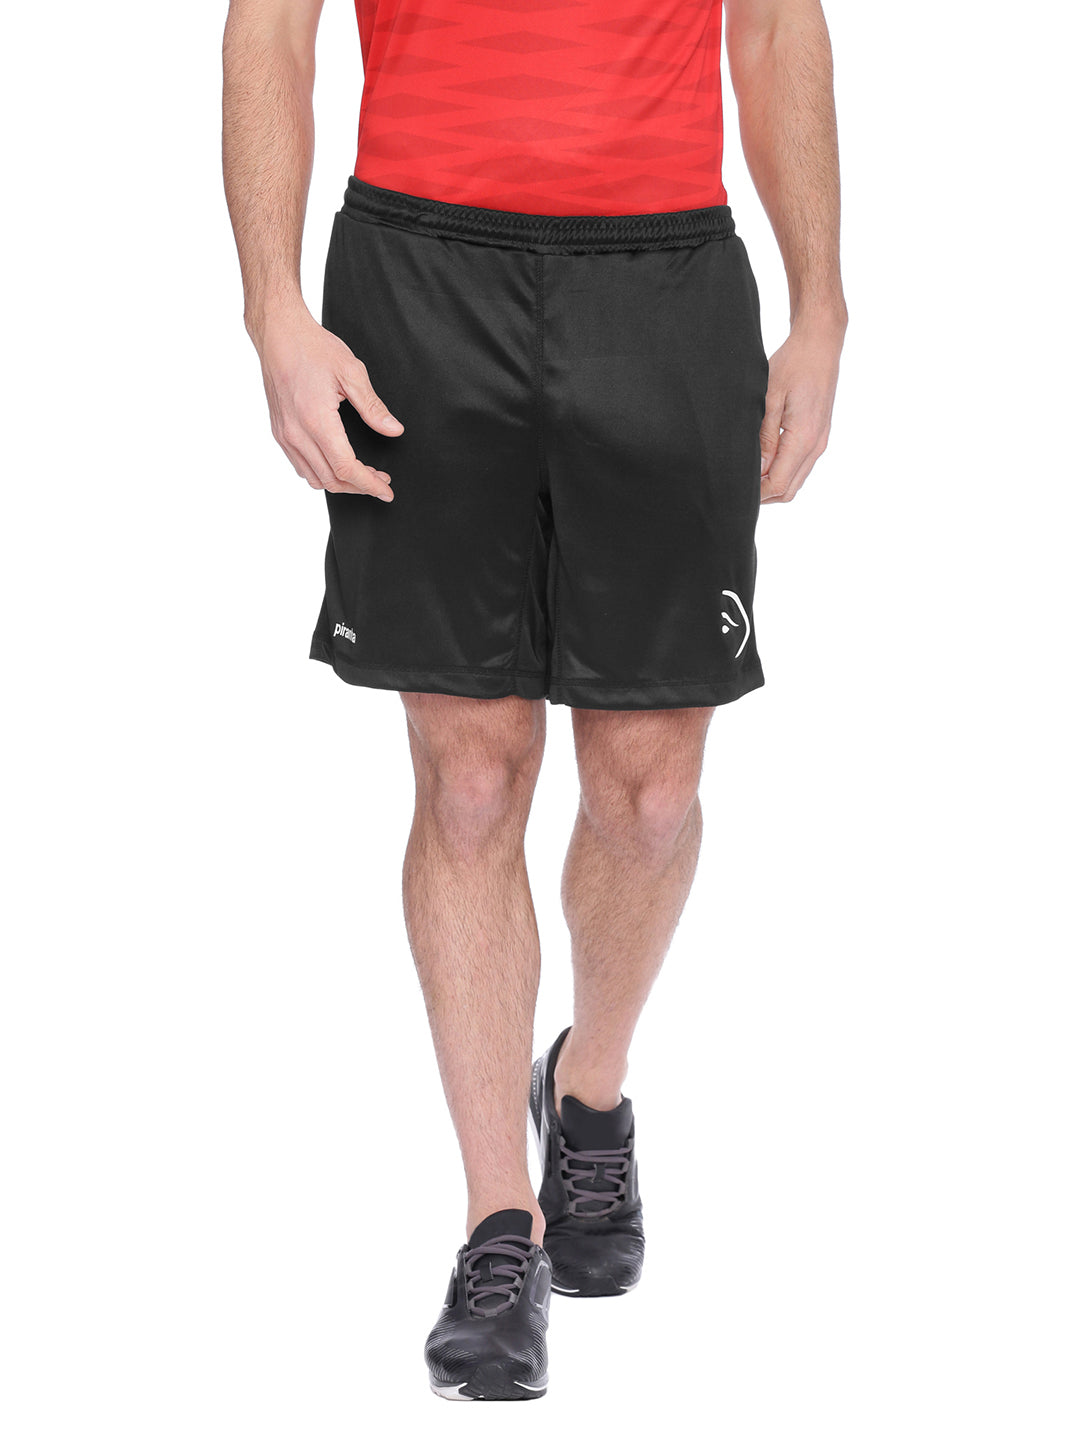 Piranha Black Shorts